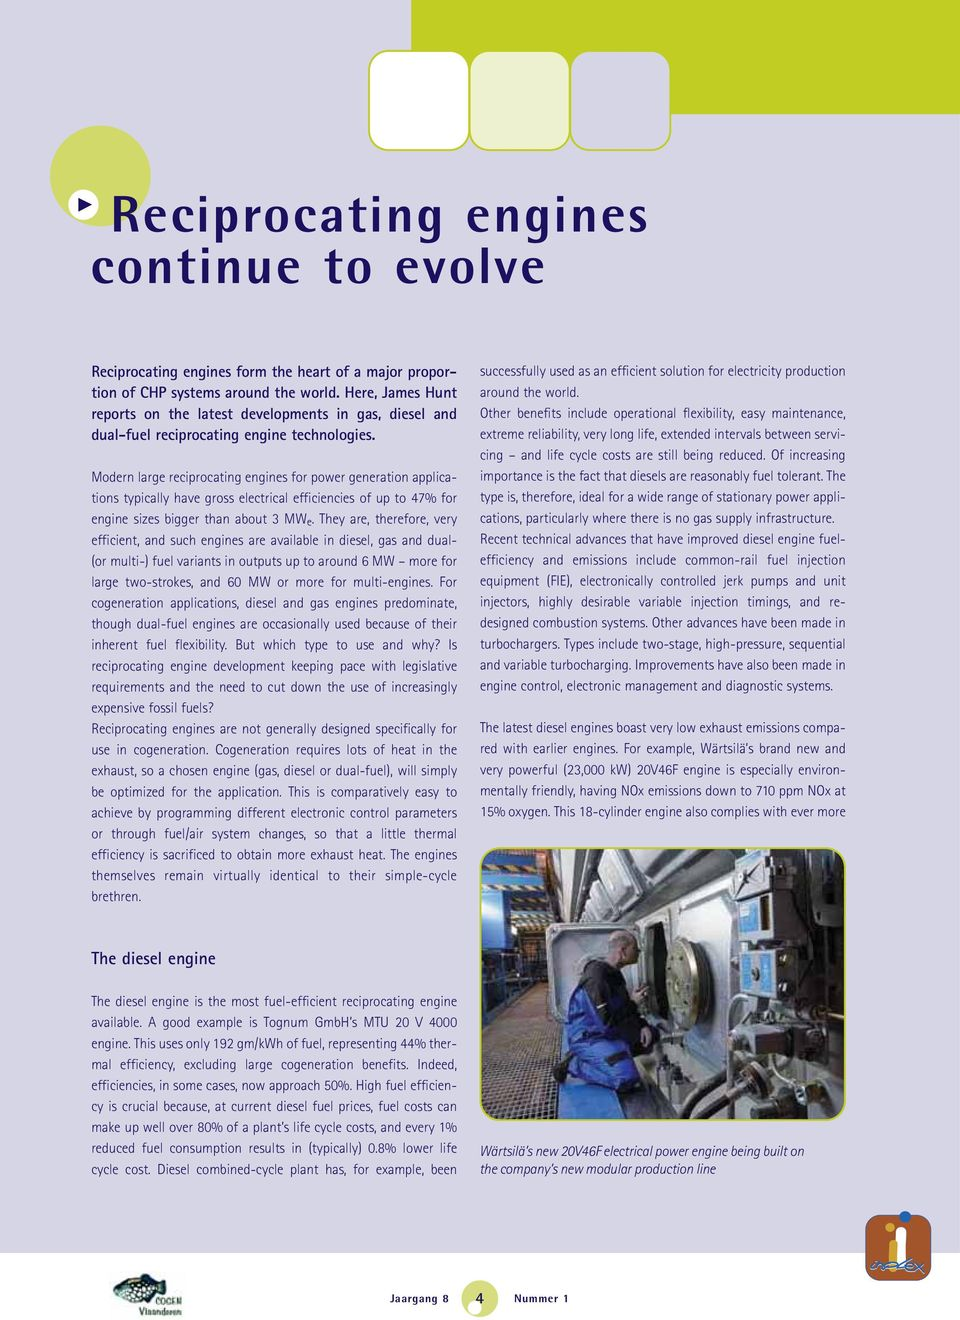 Modern large reciprocating engines for power generation applications typically have gross electrical efficiencies of up to 47% for engine sizes bigger than about 3 MW e.